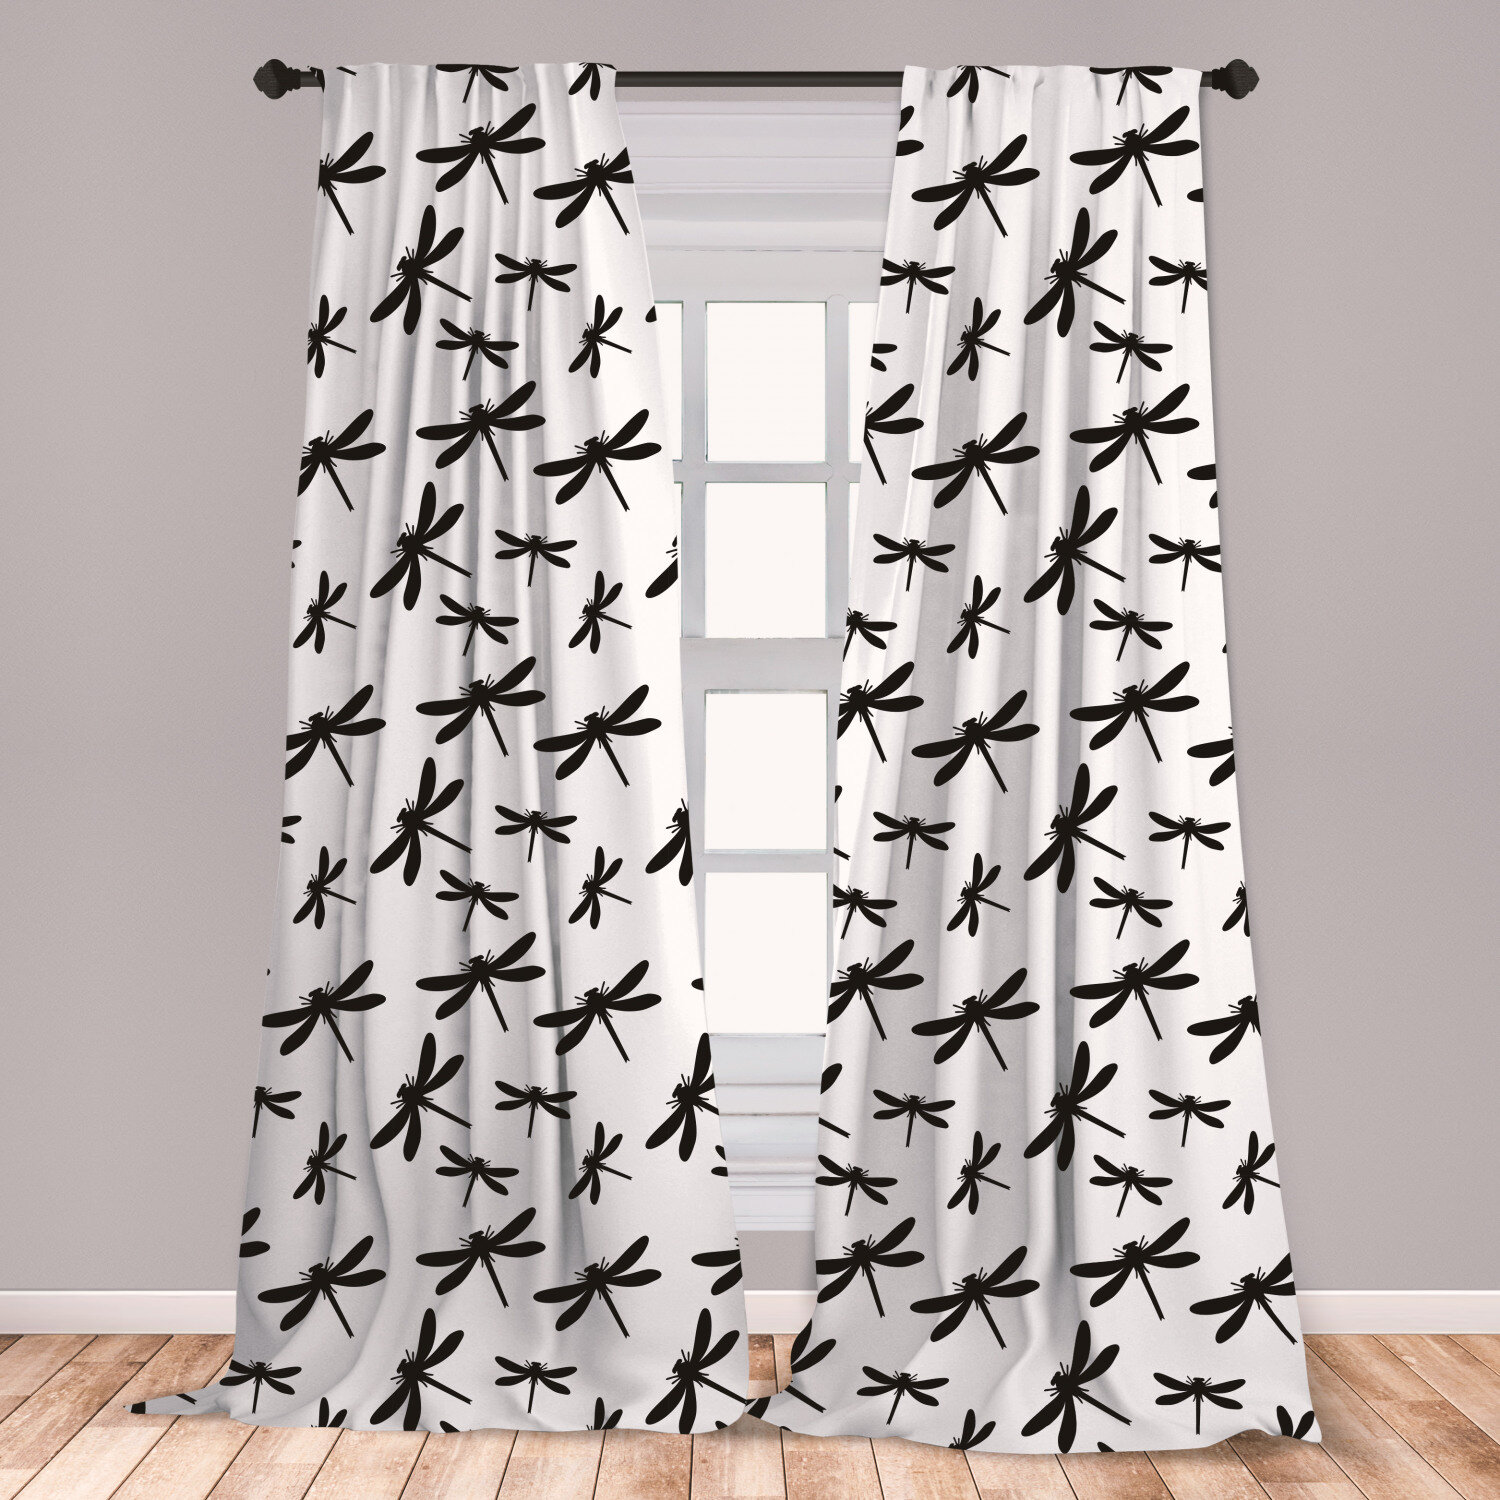 East Urban Home Ambesonne Dragonfly Curtains, Bold And Black